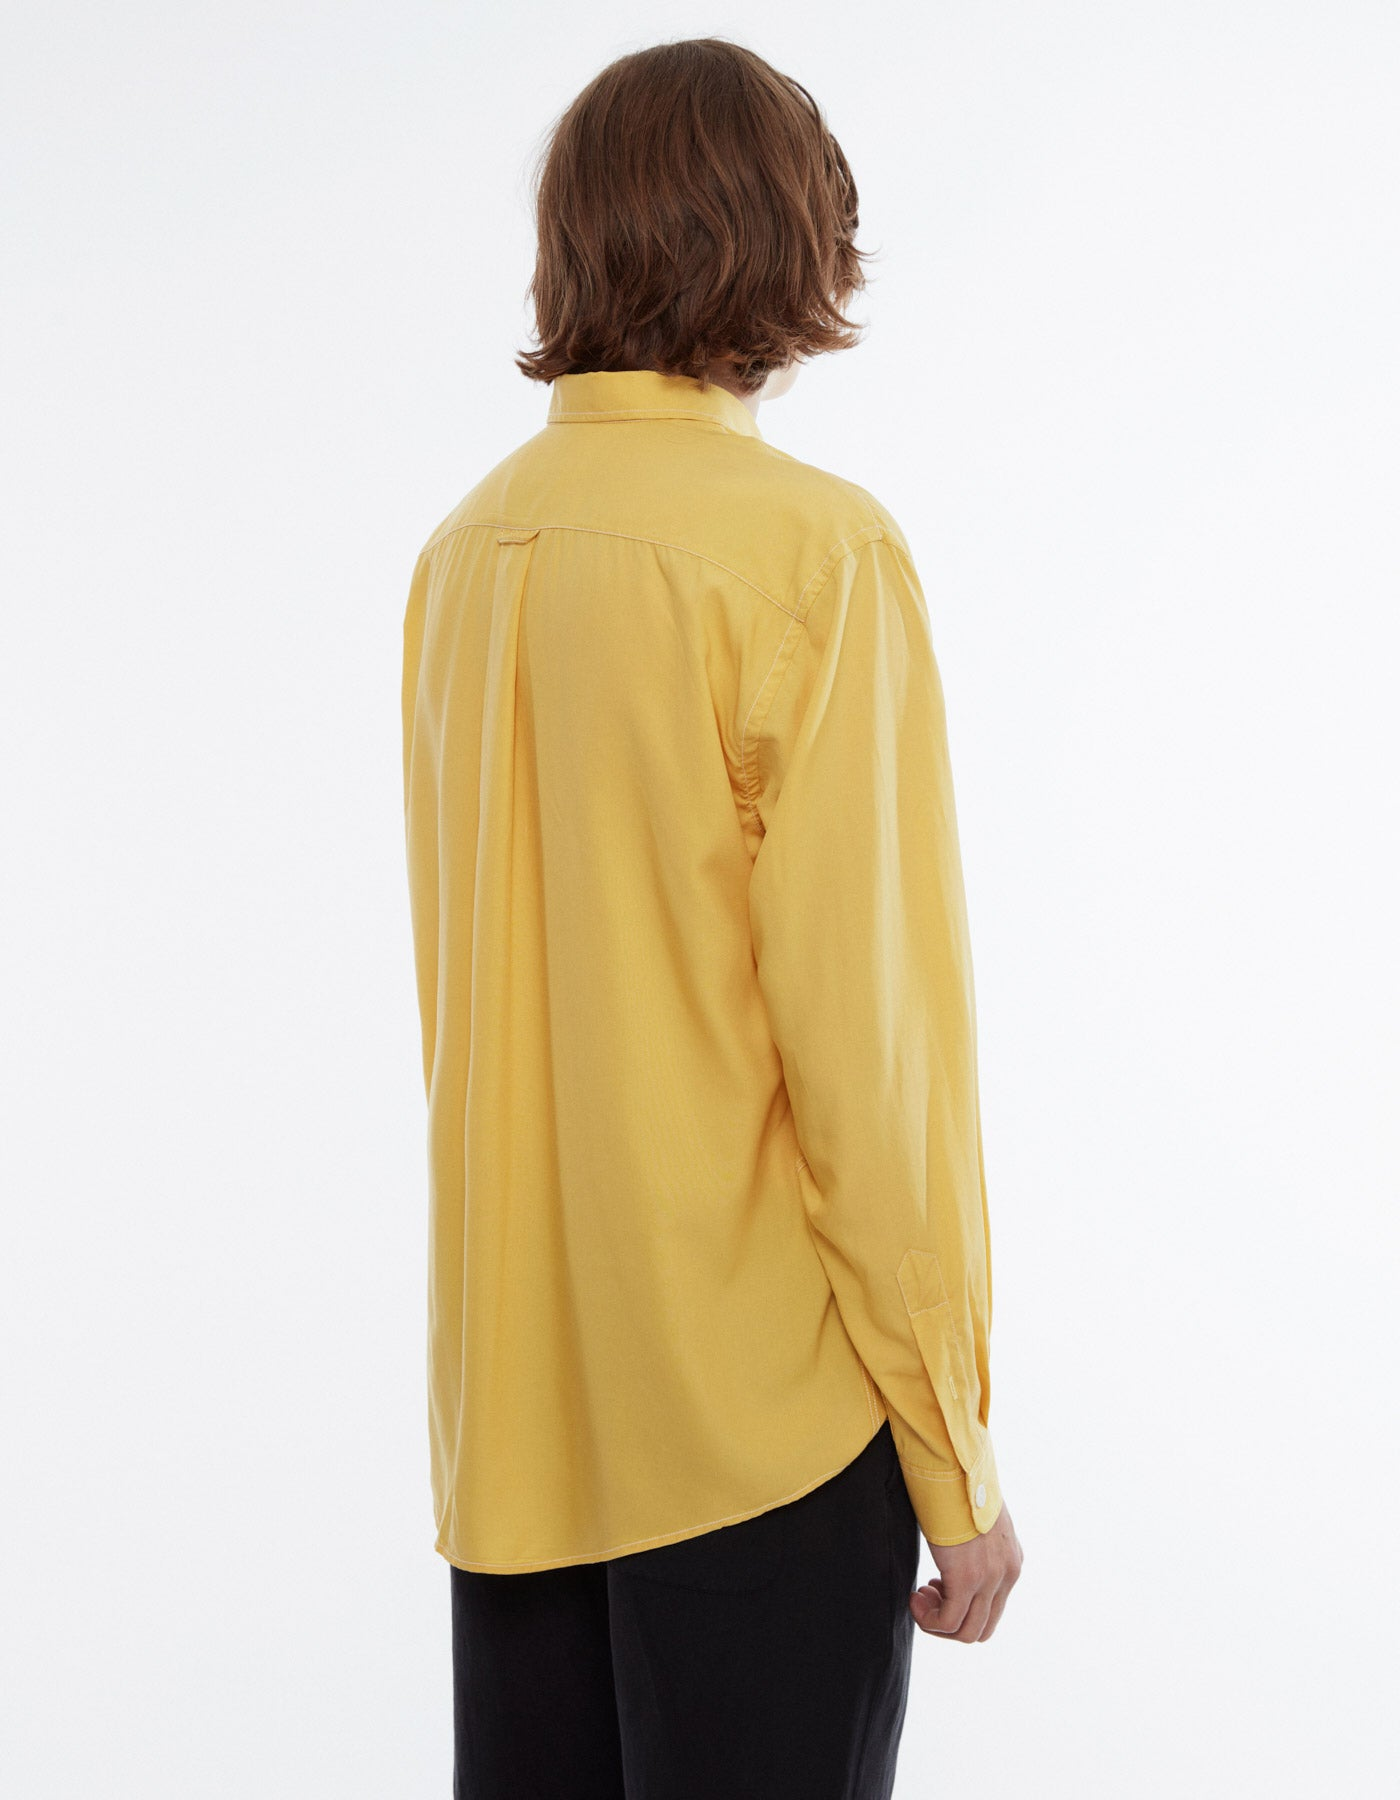 Shirt boxy yellow